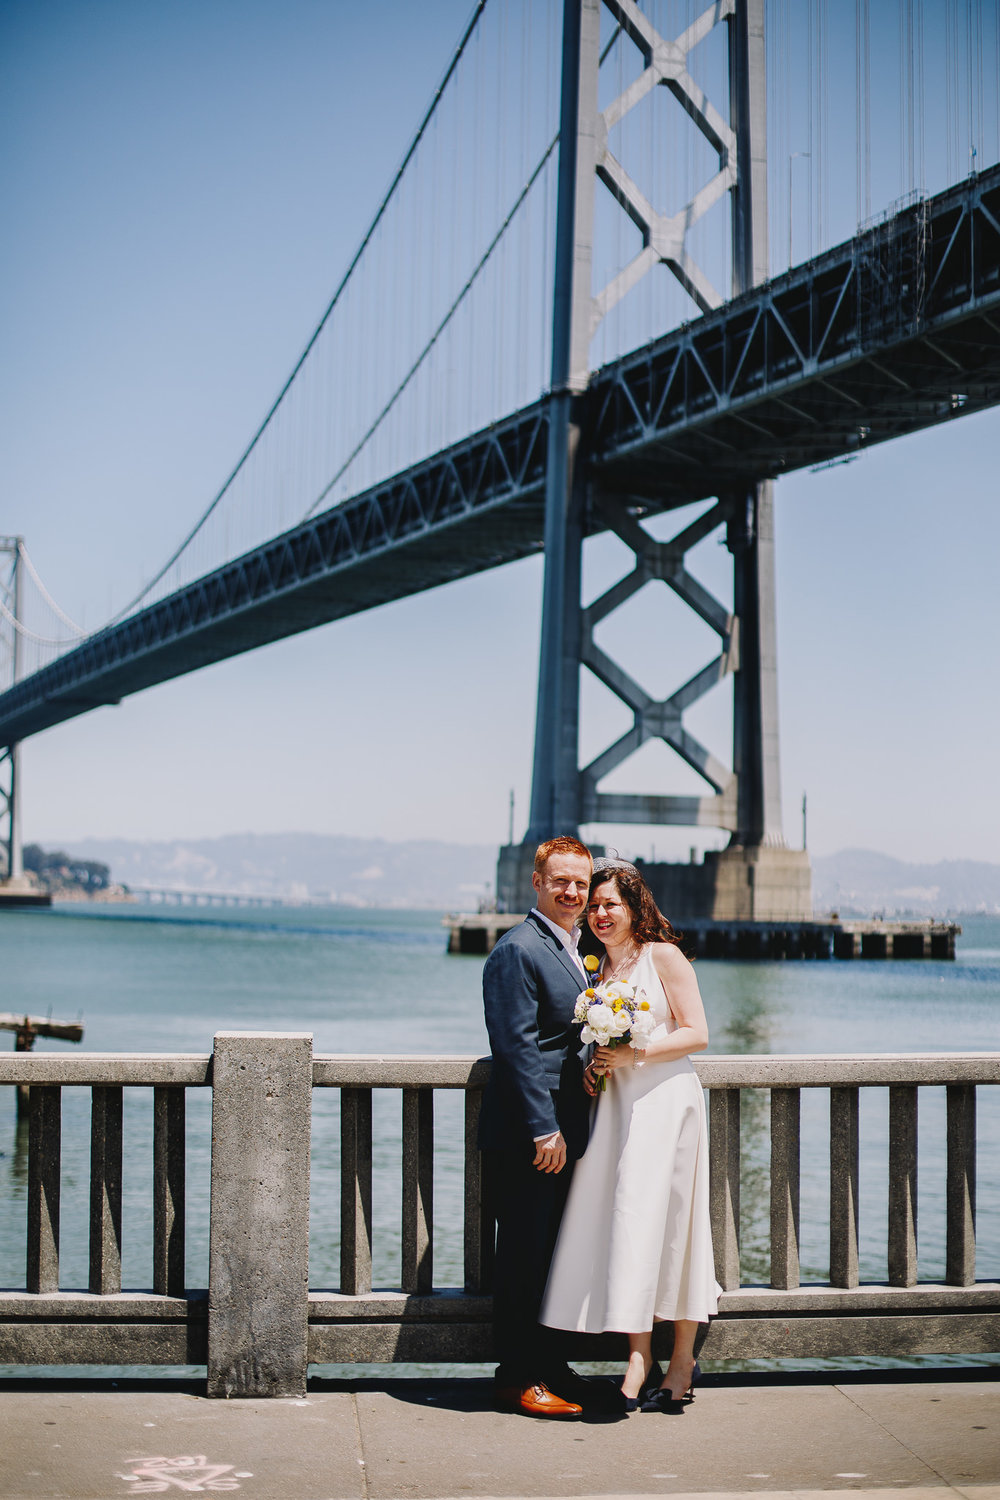 Archer Inspired Photography SF City Hall Elopement Wedding Lifestyle Documentary Affordable Photographer-289.jpg